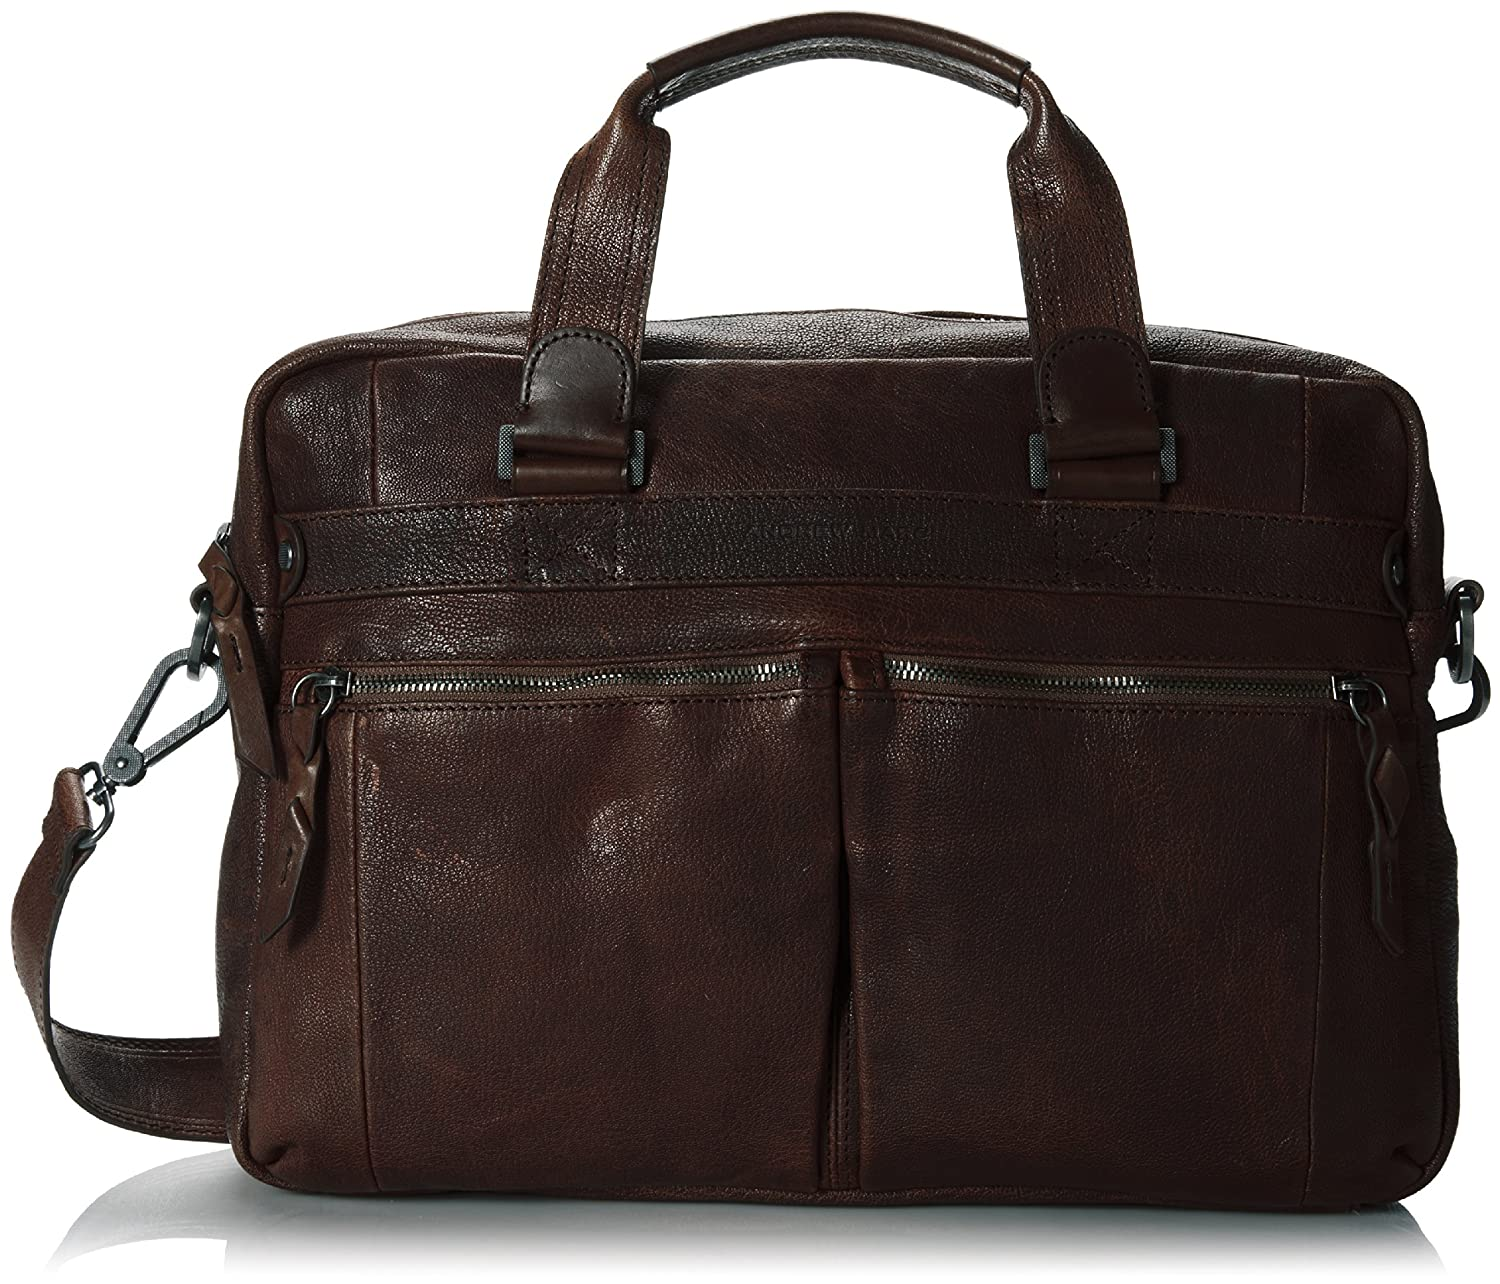 Image of Luggage Andrew Marc Men's Bowery Top Handle Brief